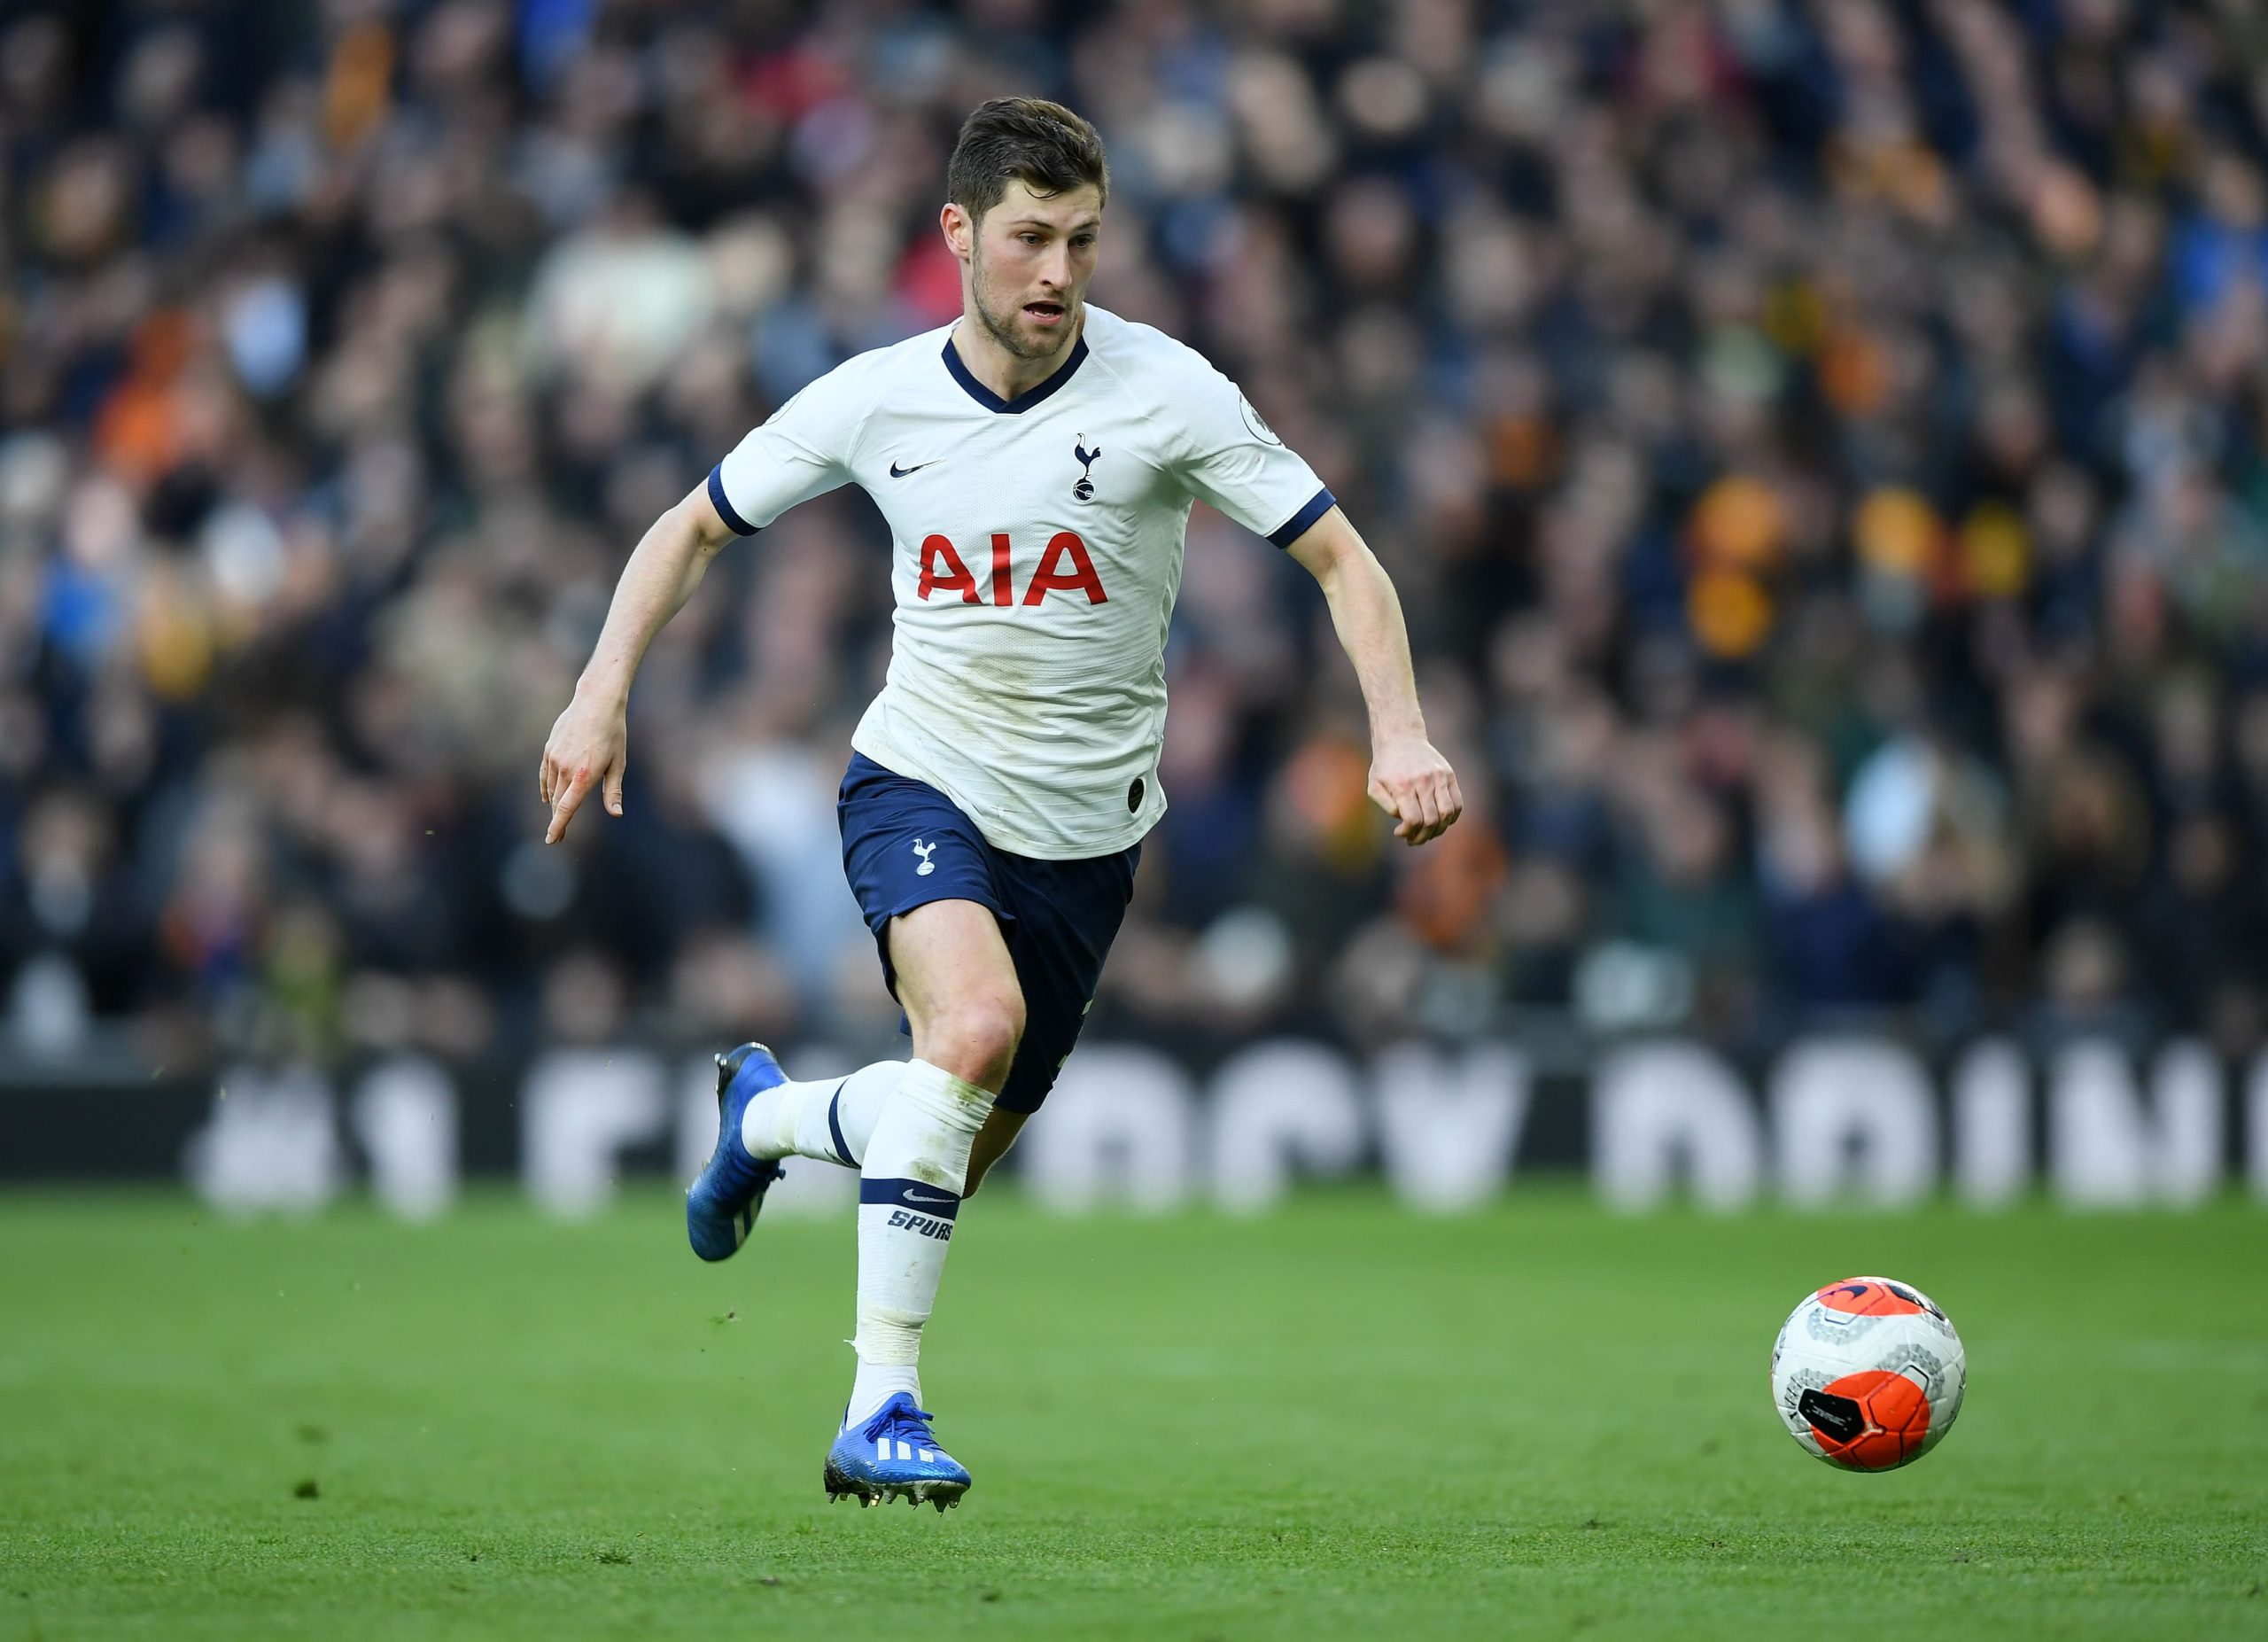 Ben Davies in action for Tottenham Hotspur. (GETTY Images)